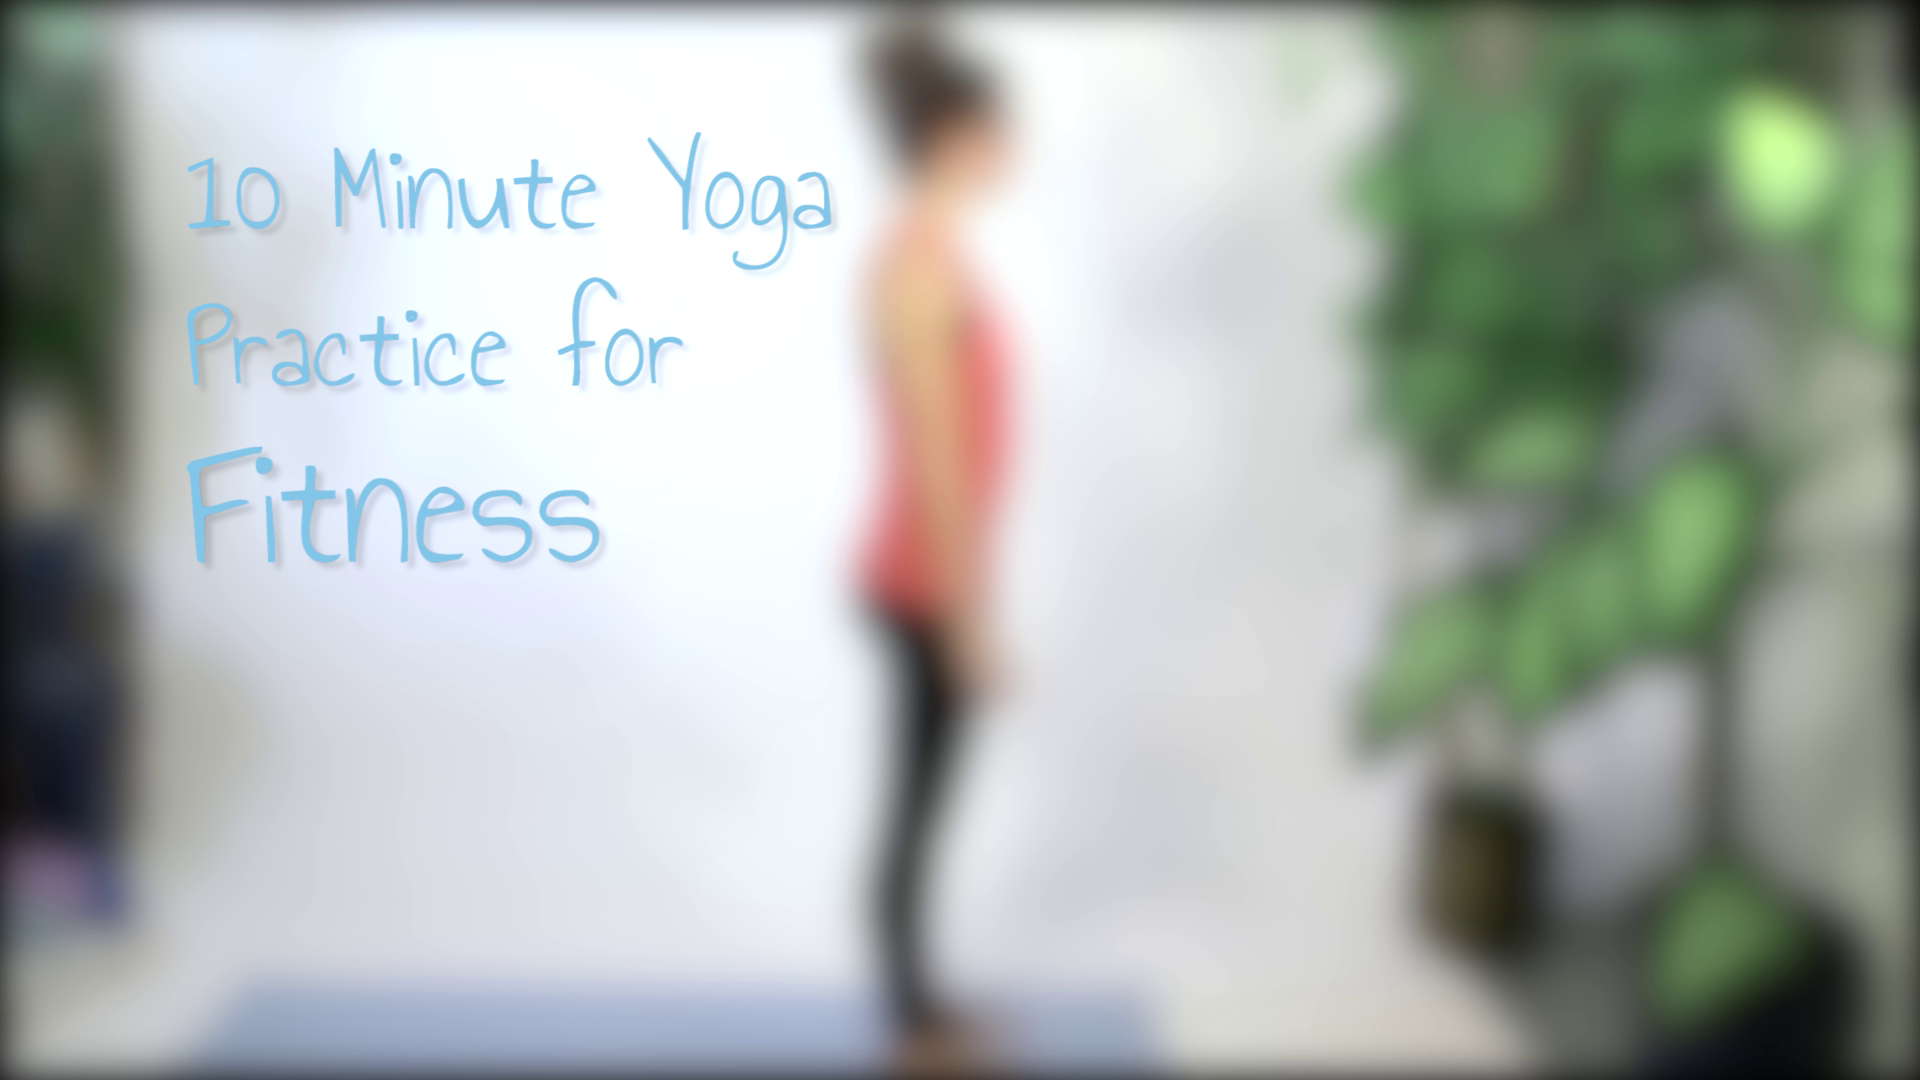 10 Minute Yoga Practice for Fitness